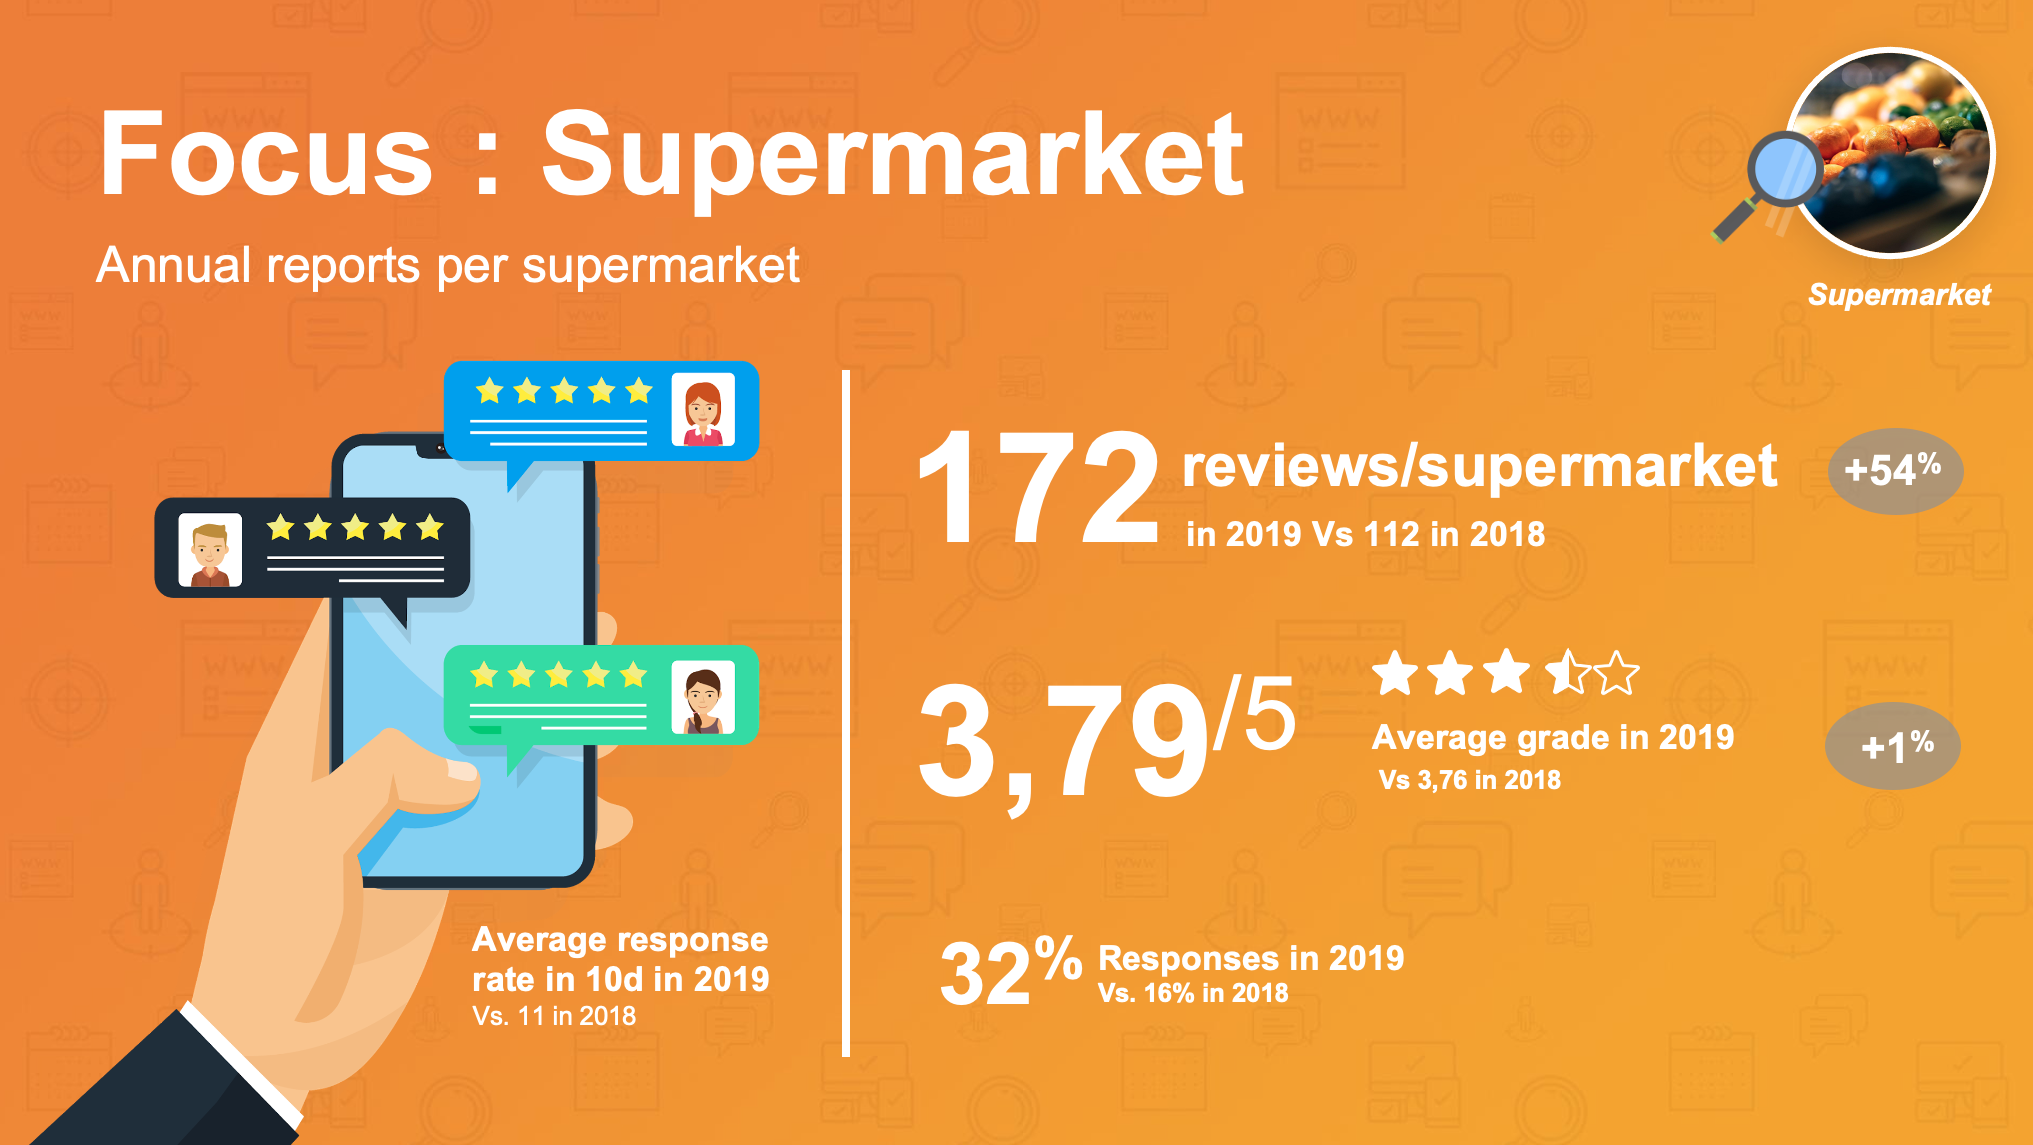 Impact of reviews on online actions for supermarkets